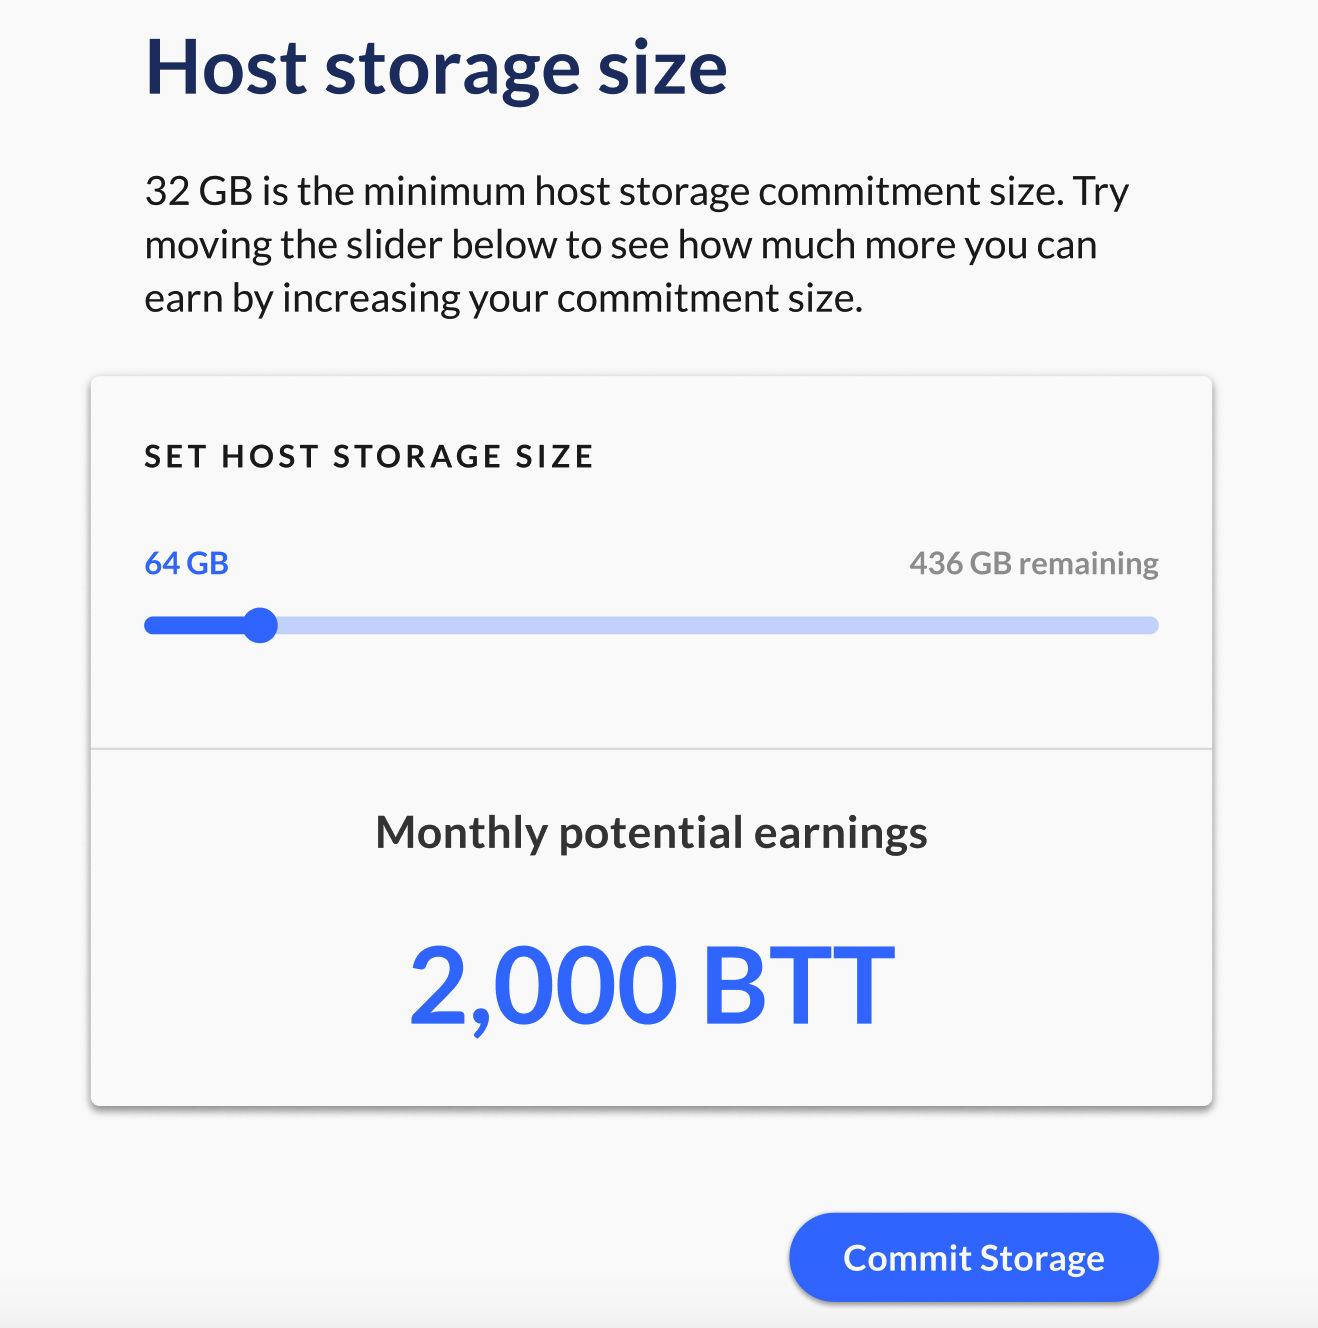 Upon launching the Host Dashboard, you will be greeted with a prompt to select your dedicated host storage space.